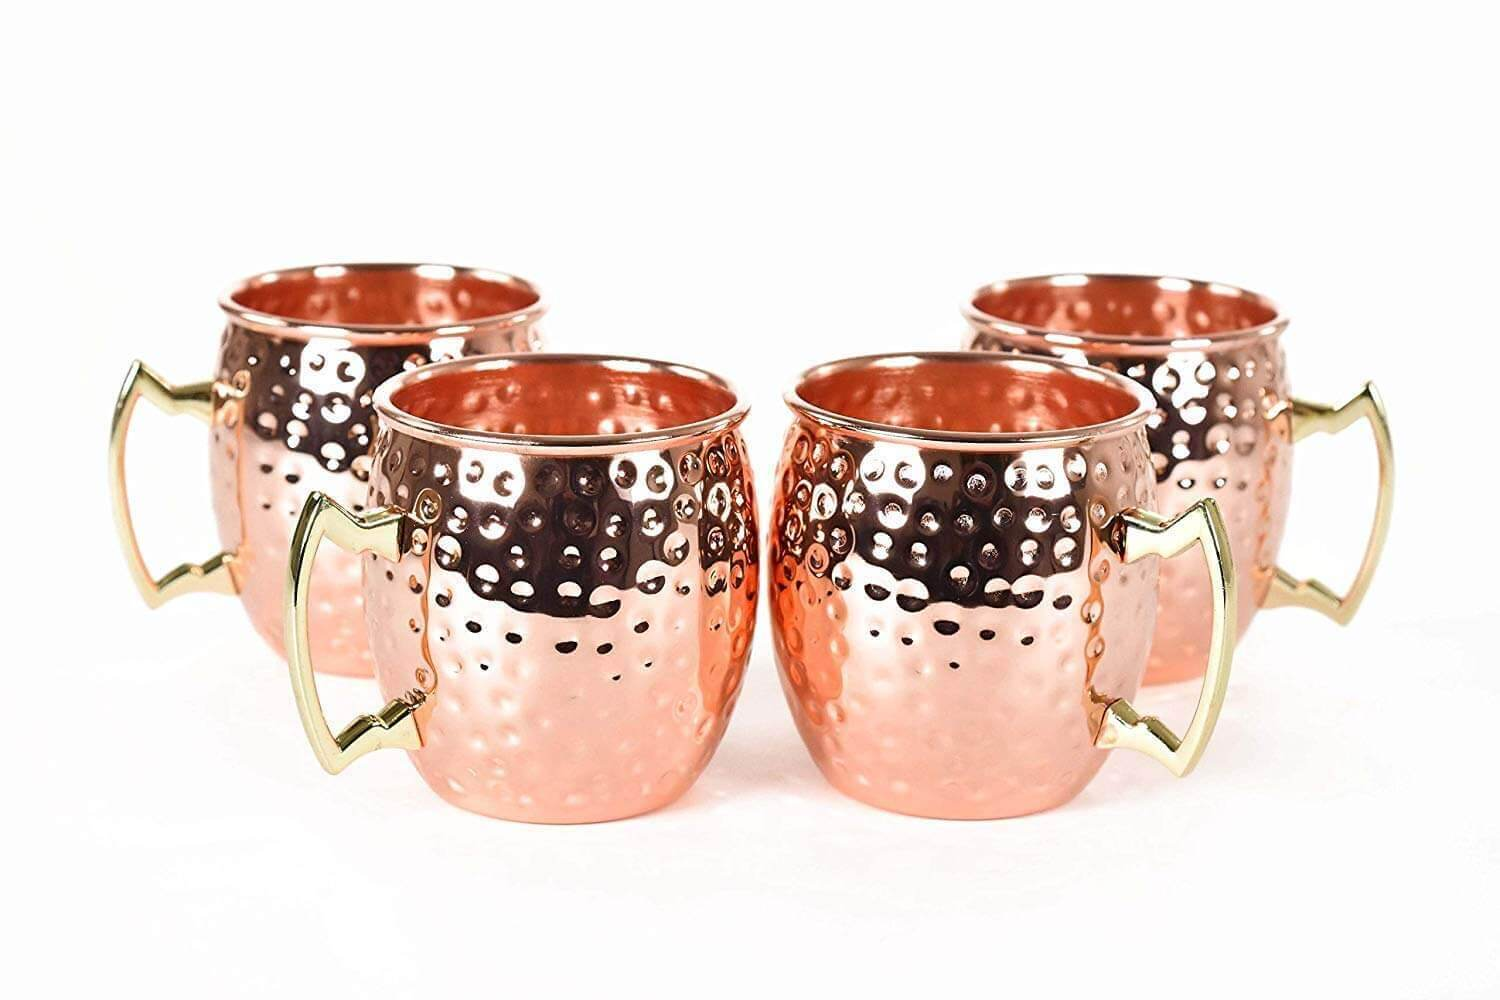 OLIA DESIGN RV Hammered Copper Moscow Mule Mug